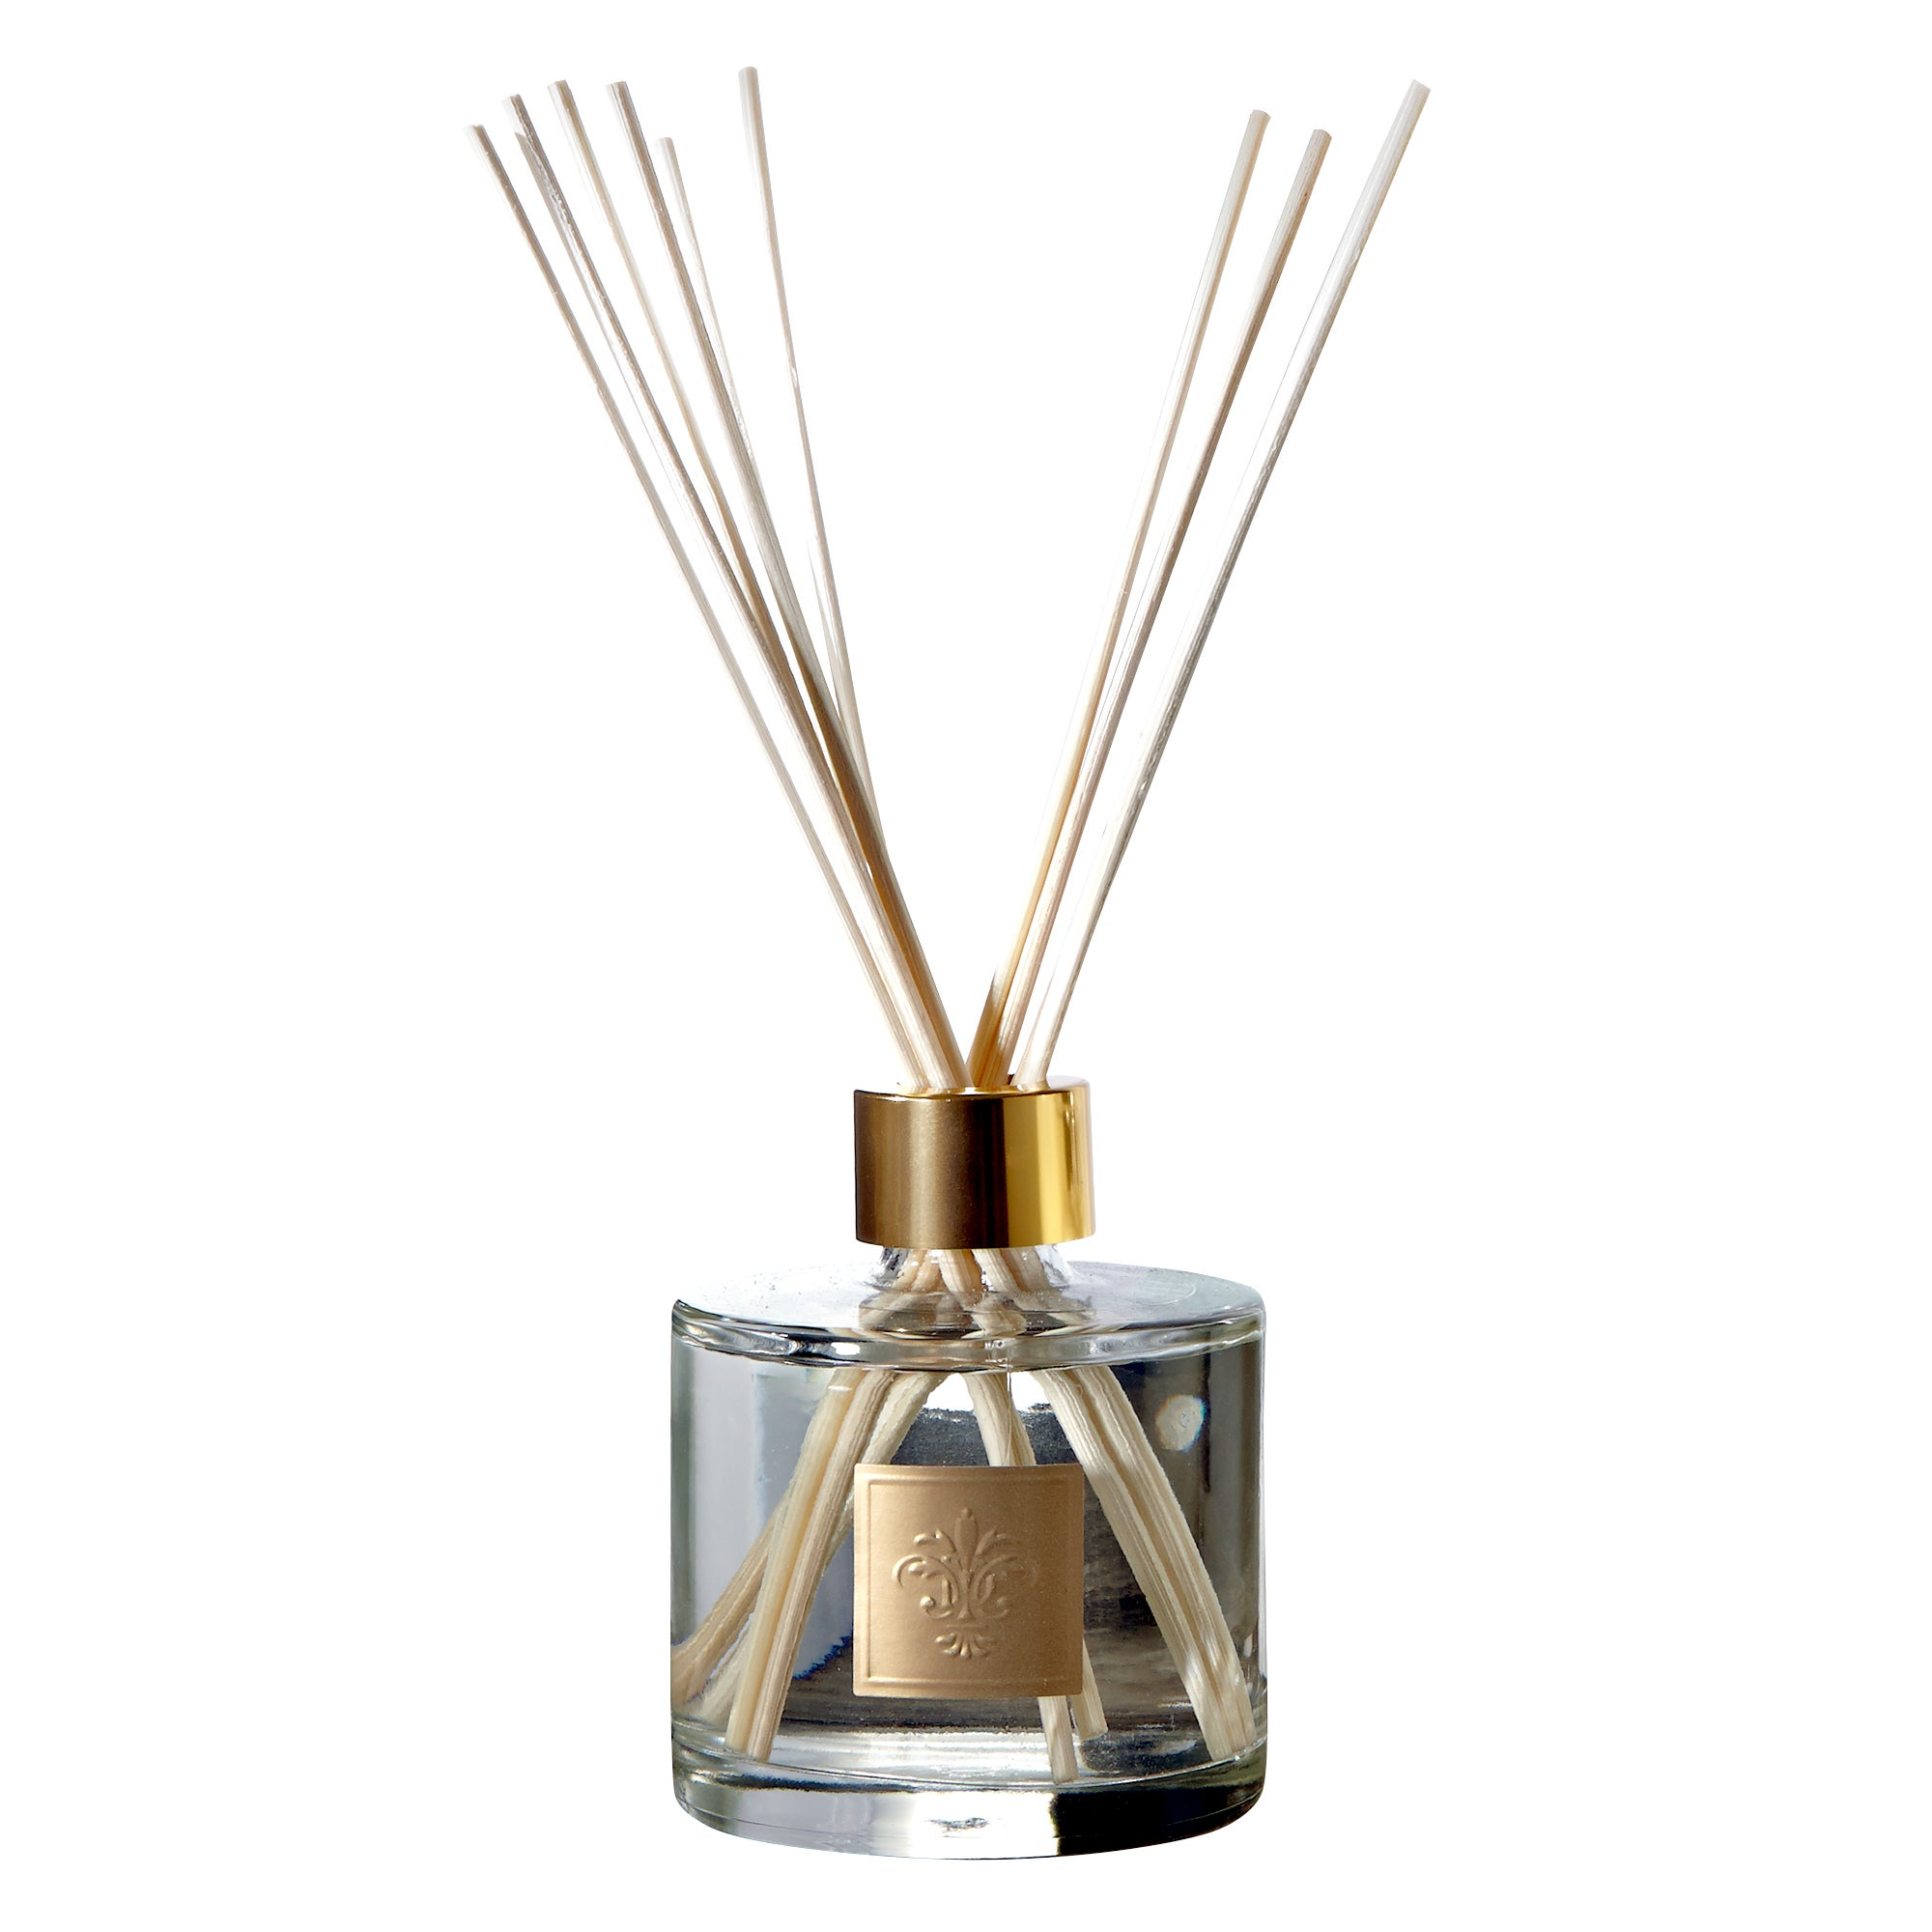 Dorma White Blossom and Musk 100ml Reed Diffuser